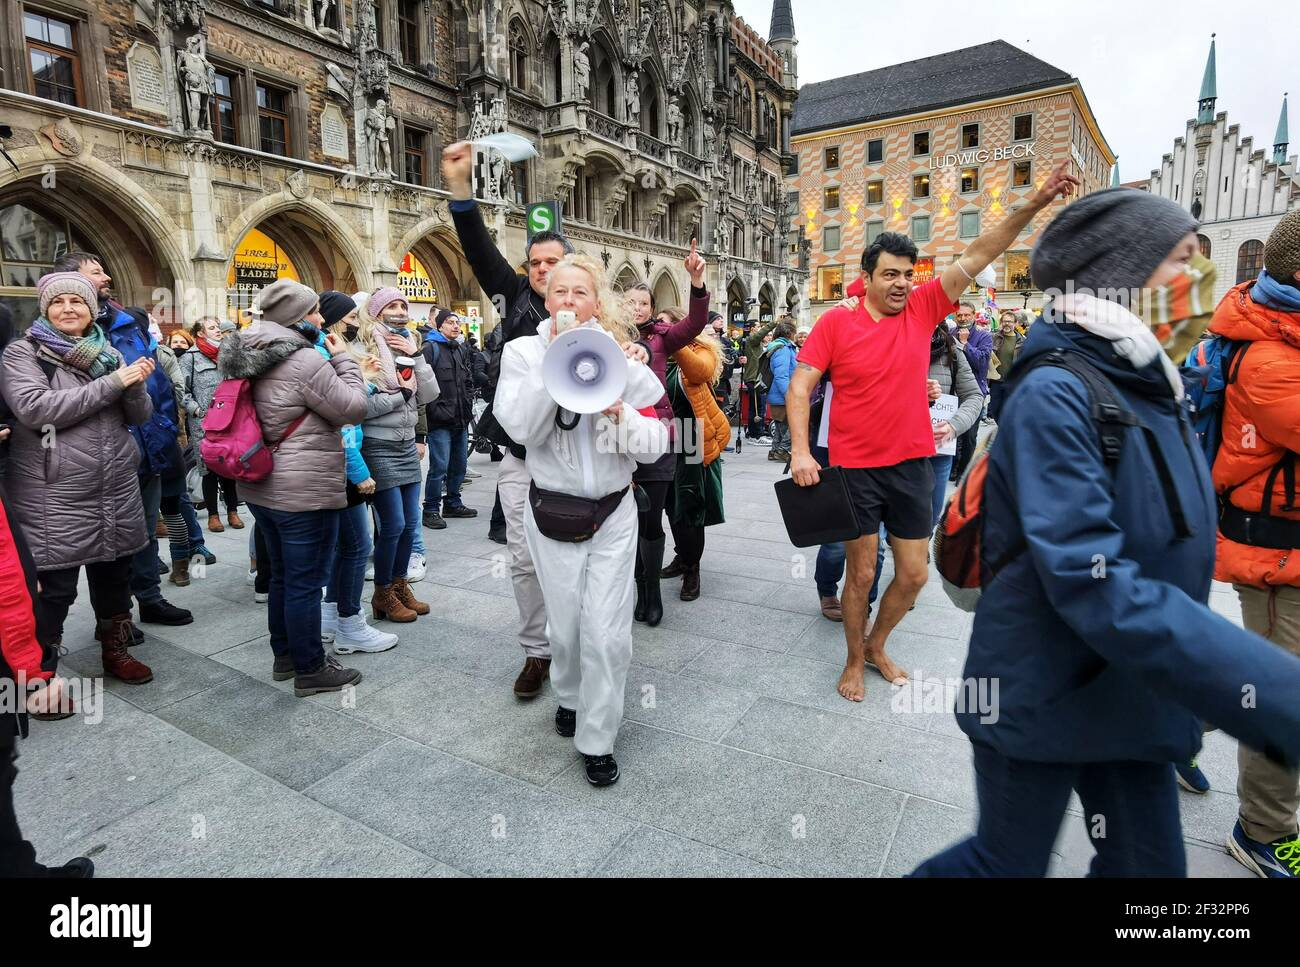 Munich, Bavaria, Germany. 14th Mar, 2021. Corona deniers and anti-maskers partake in a Polonaise dance- without distancing and most without masks at Munich's Marienplatz. Despite rising British variant Corona numbers, police maintained a laid-back approach. Using the occasion of Germany going into a period of anti-Corona measures approximately one year ago, Corona deniers and anti-maskers led by Querdenken's Markus Haintz assembled at Munich's Marienplatz and then at the Maxmonument in an effort to protest against the Bavarian Landtag and promote their initiative to dissolve it Stock Photo